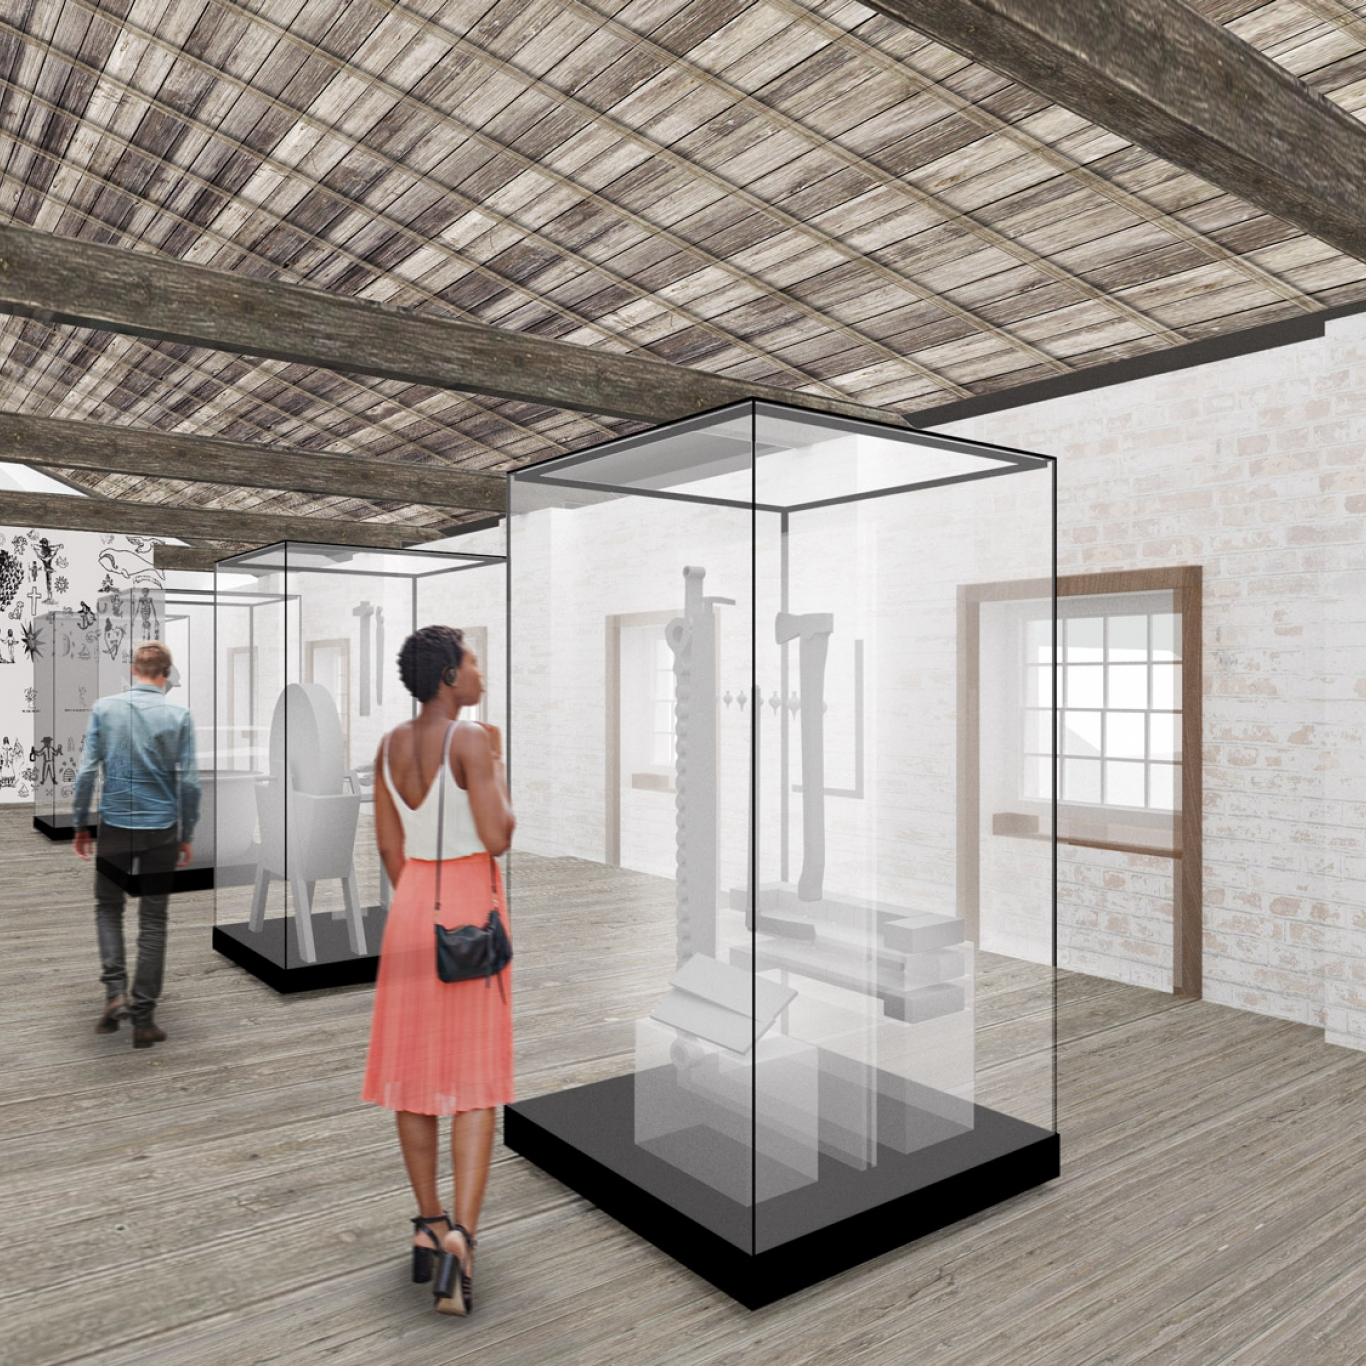 Artist's rendition of white painted room with exposed ceiling beams, with showcases and people for scale.